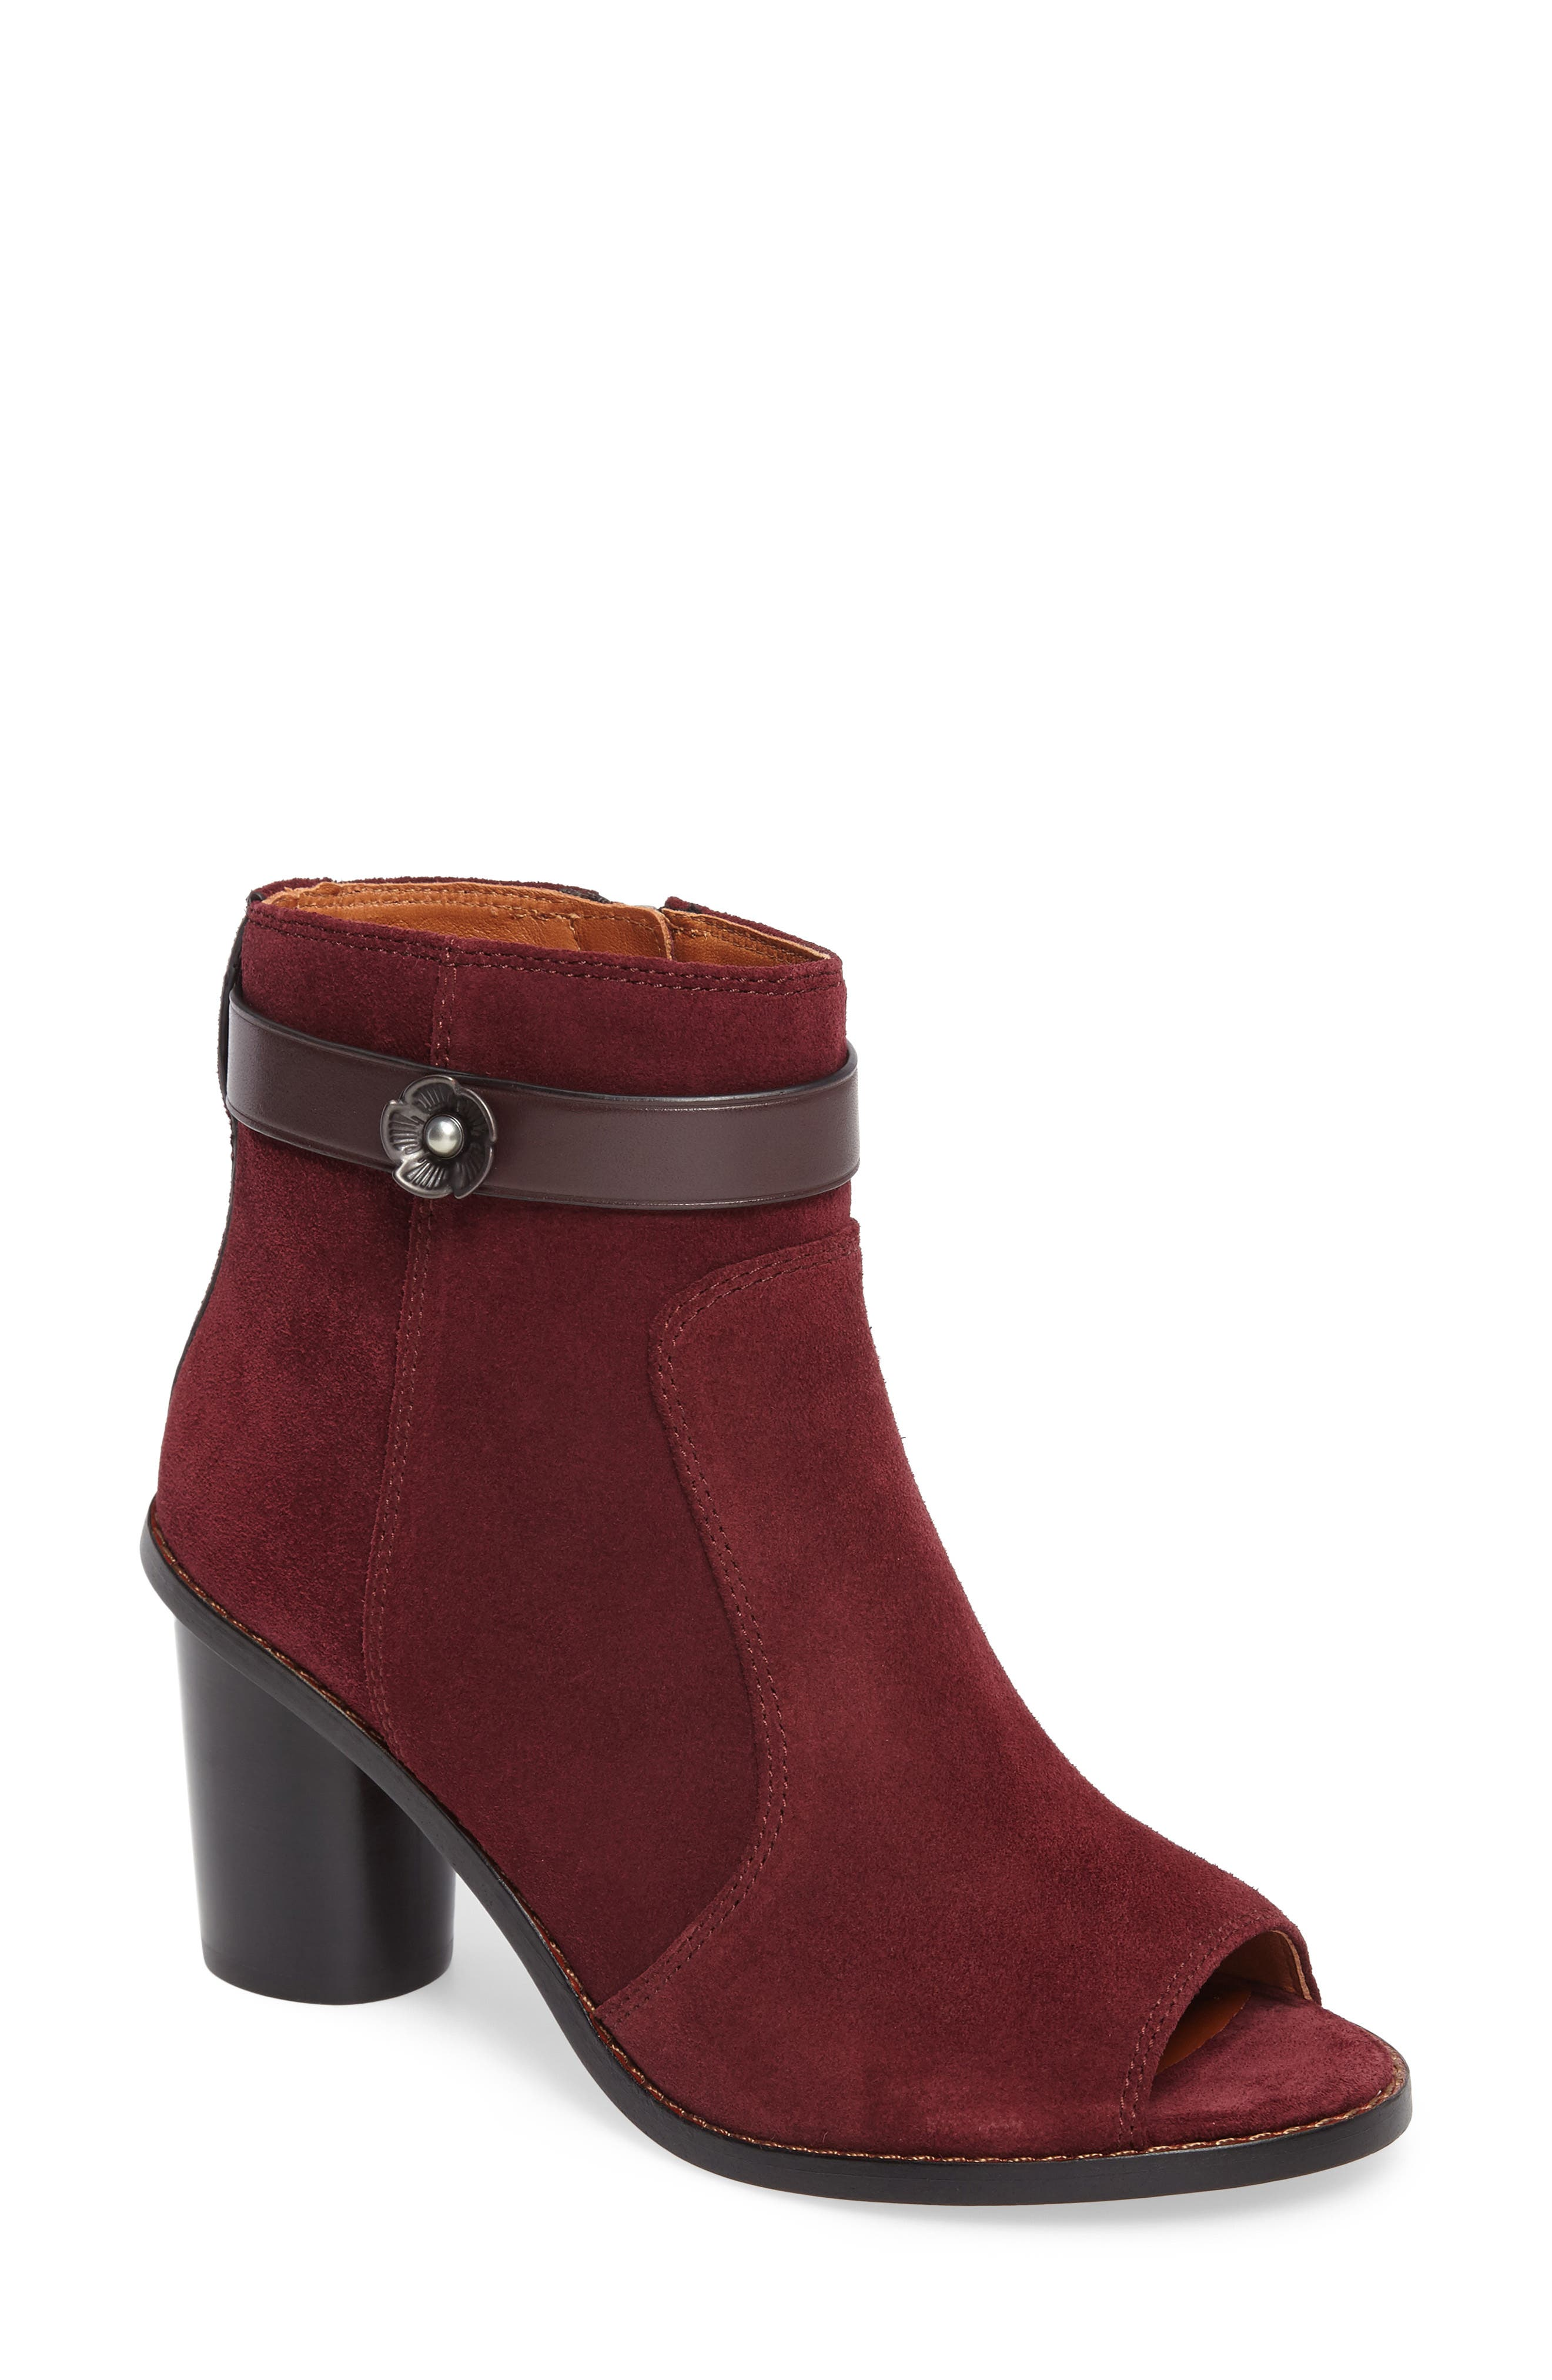 COACH Peep Toe Moto Boot (Women)